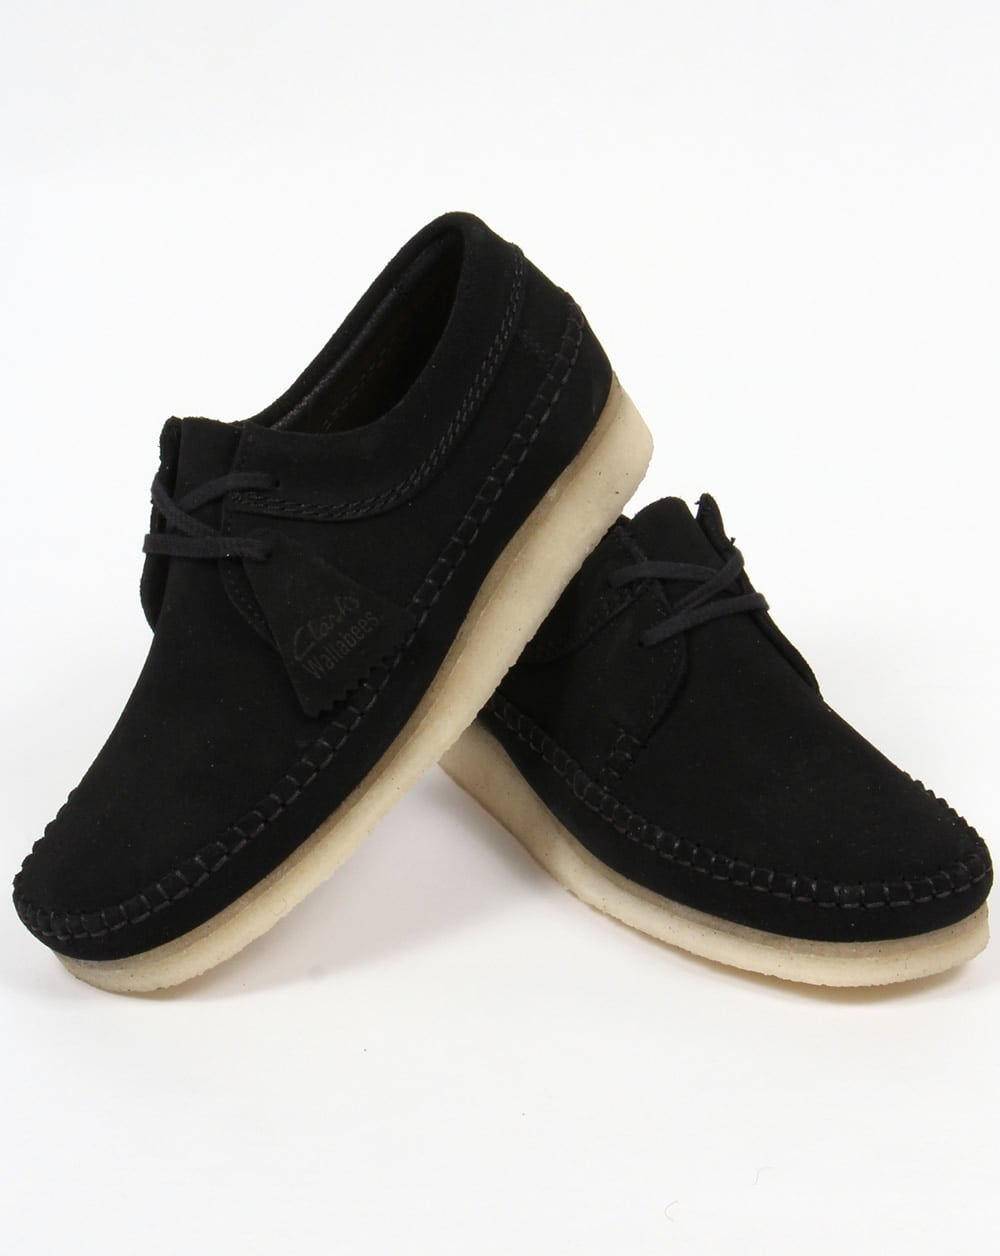 Clarks Shoes Home Shopping